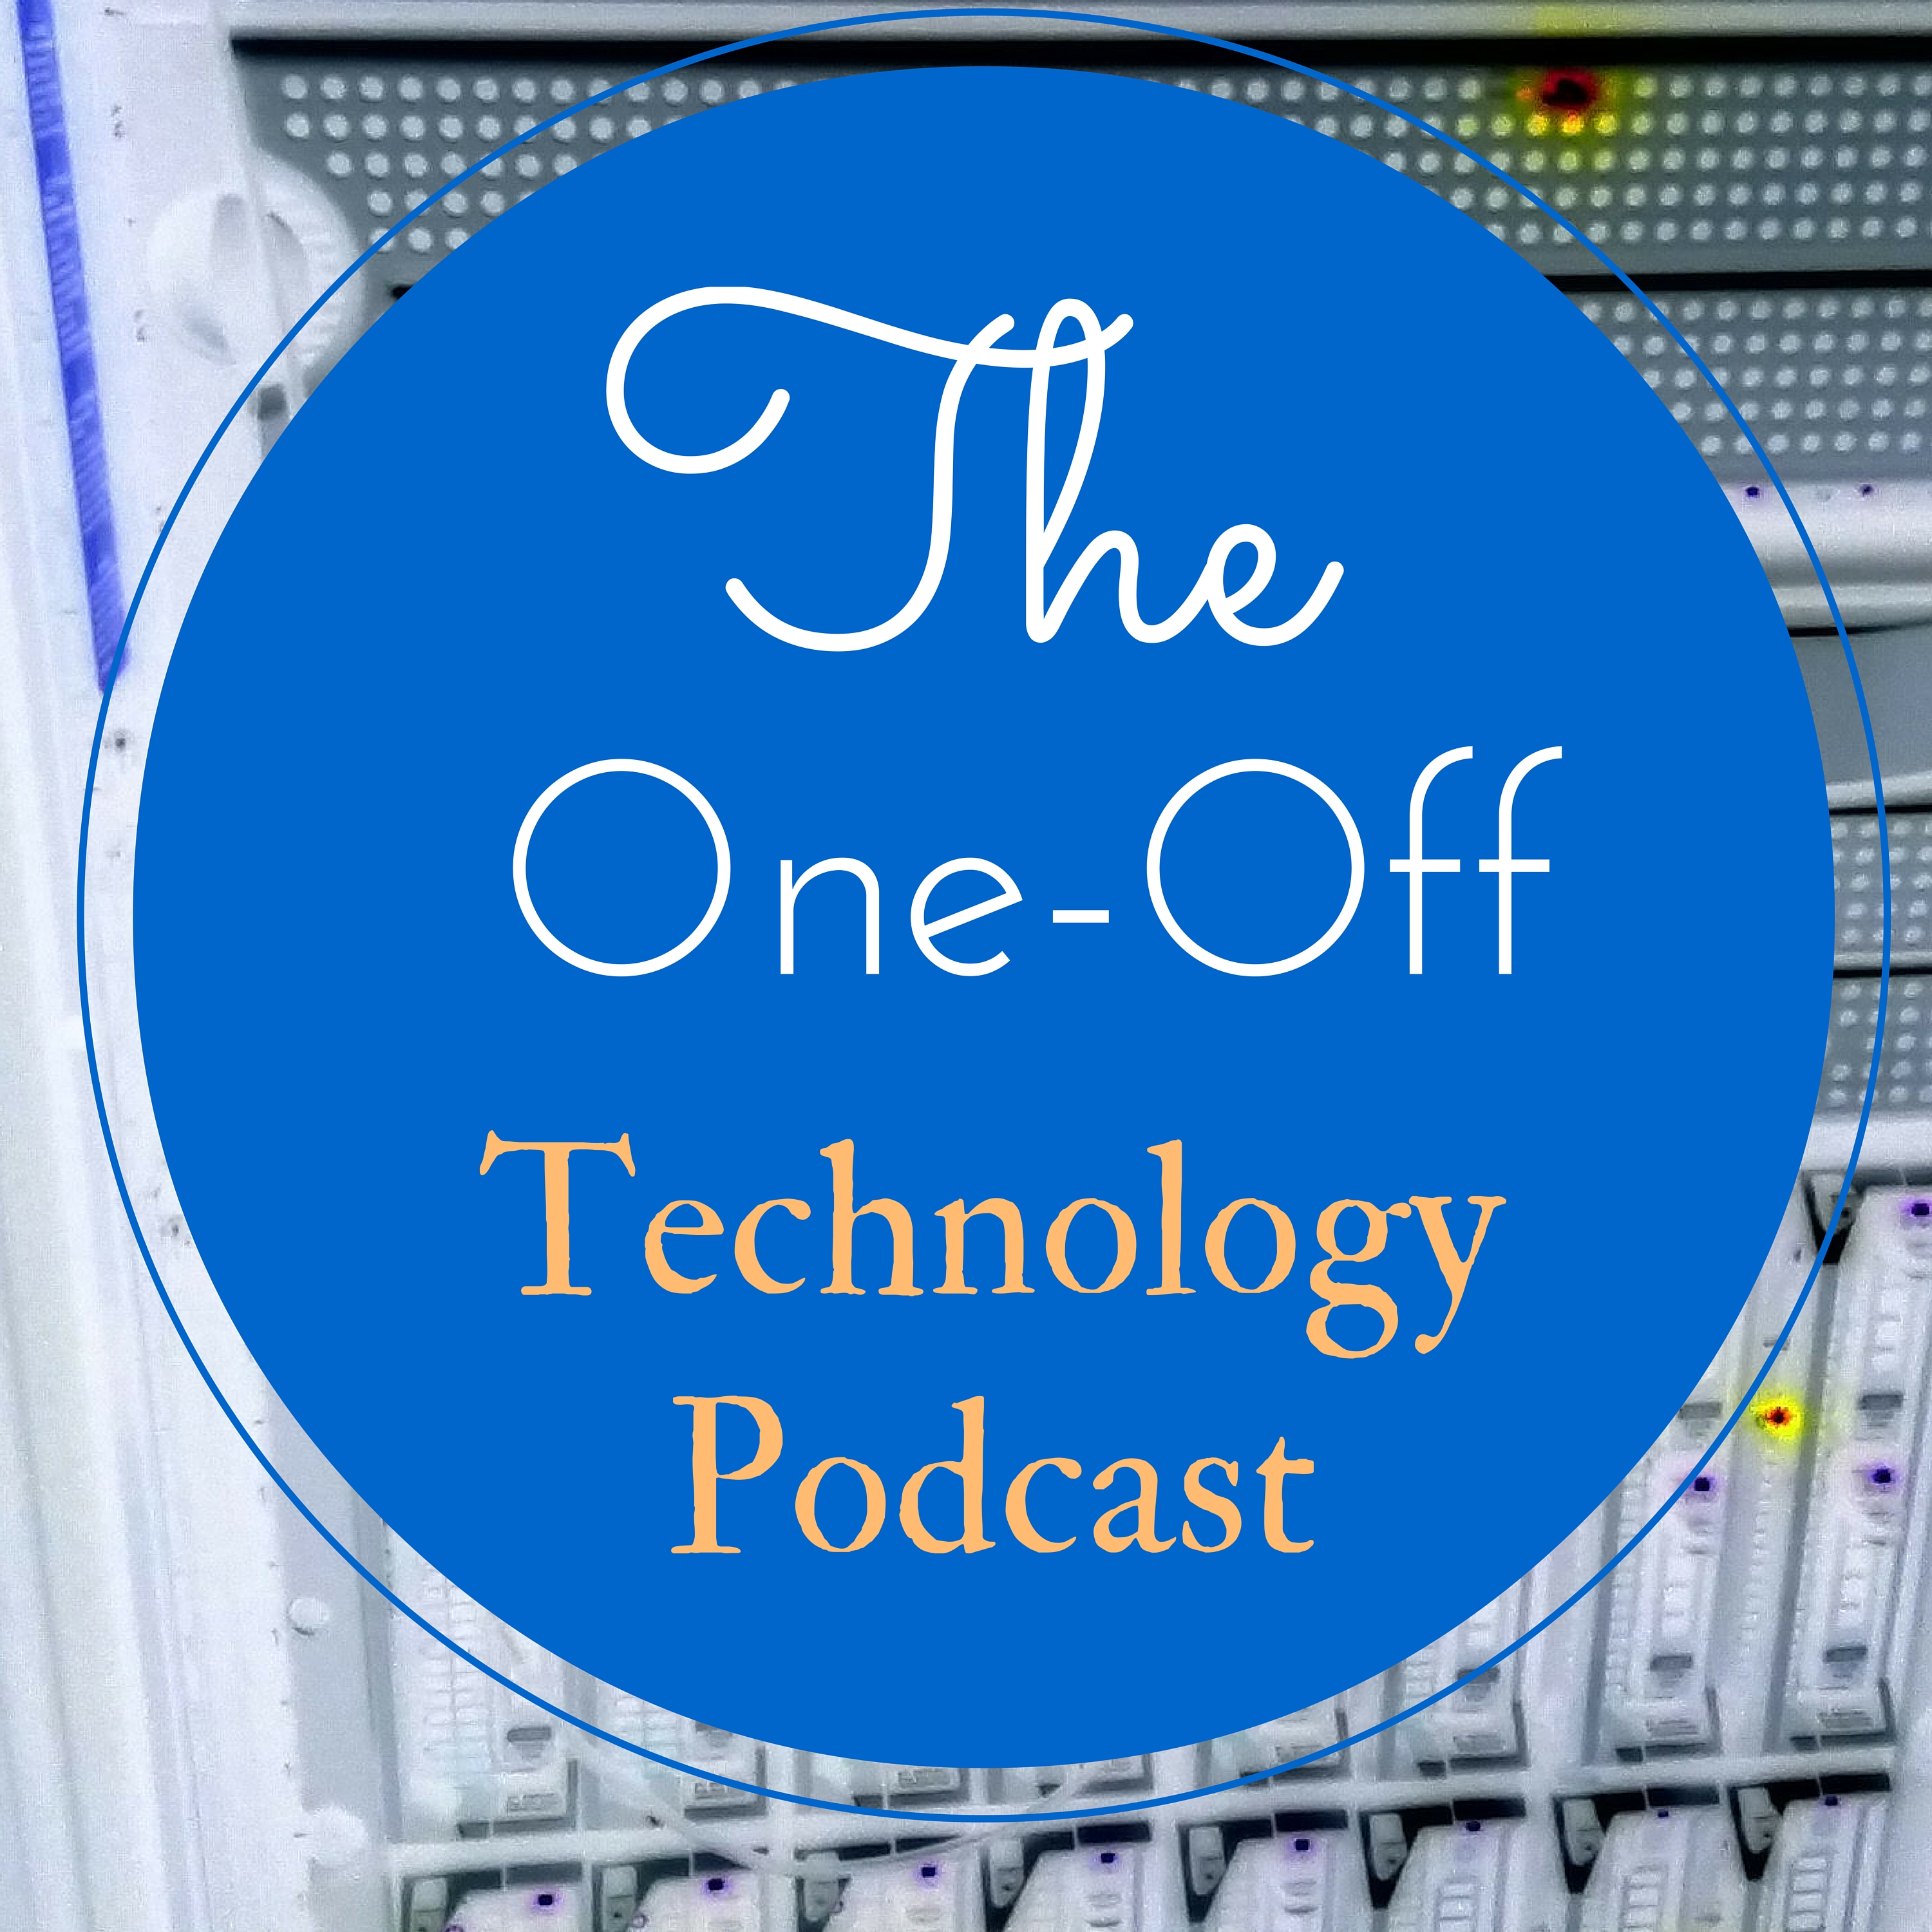 The One-Off Technology Podcast